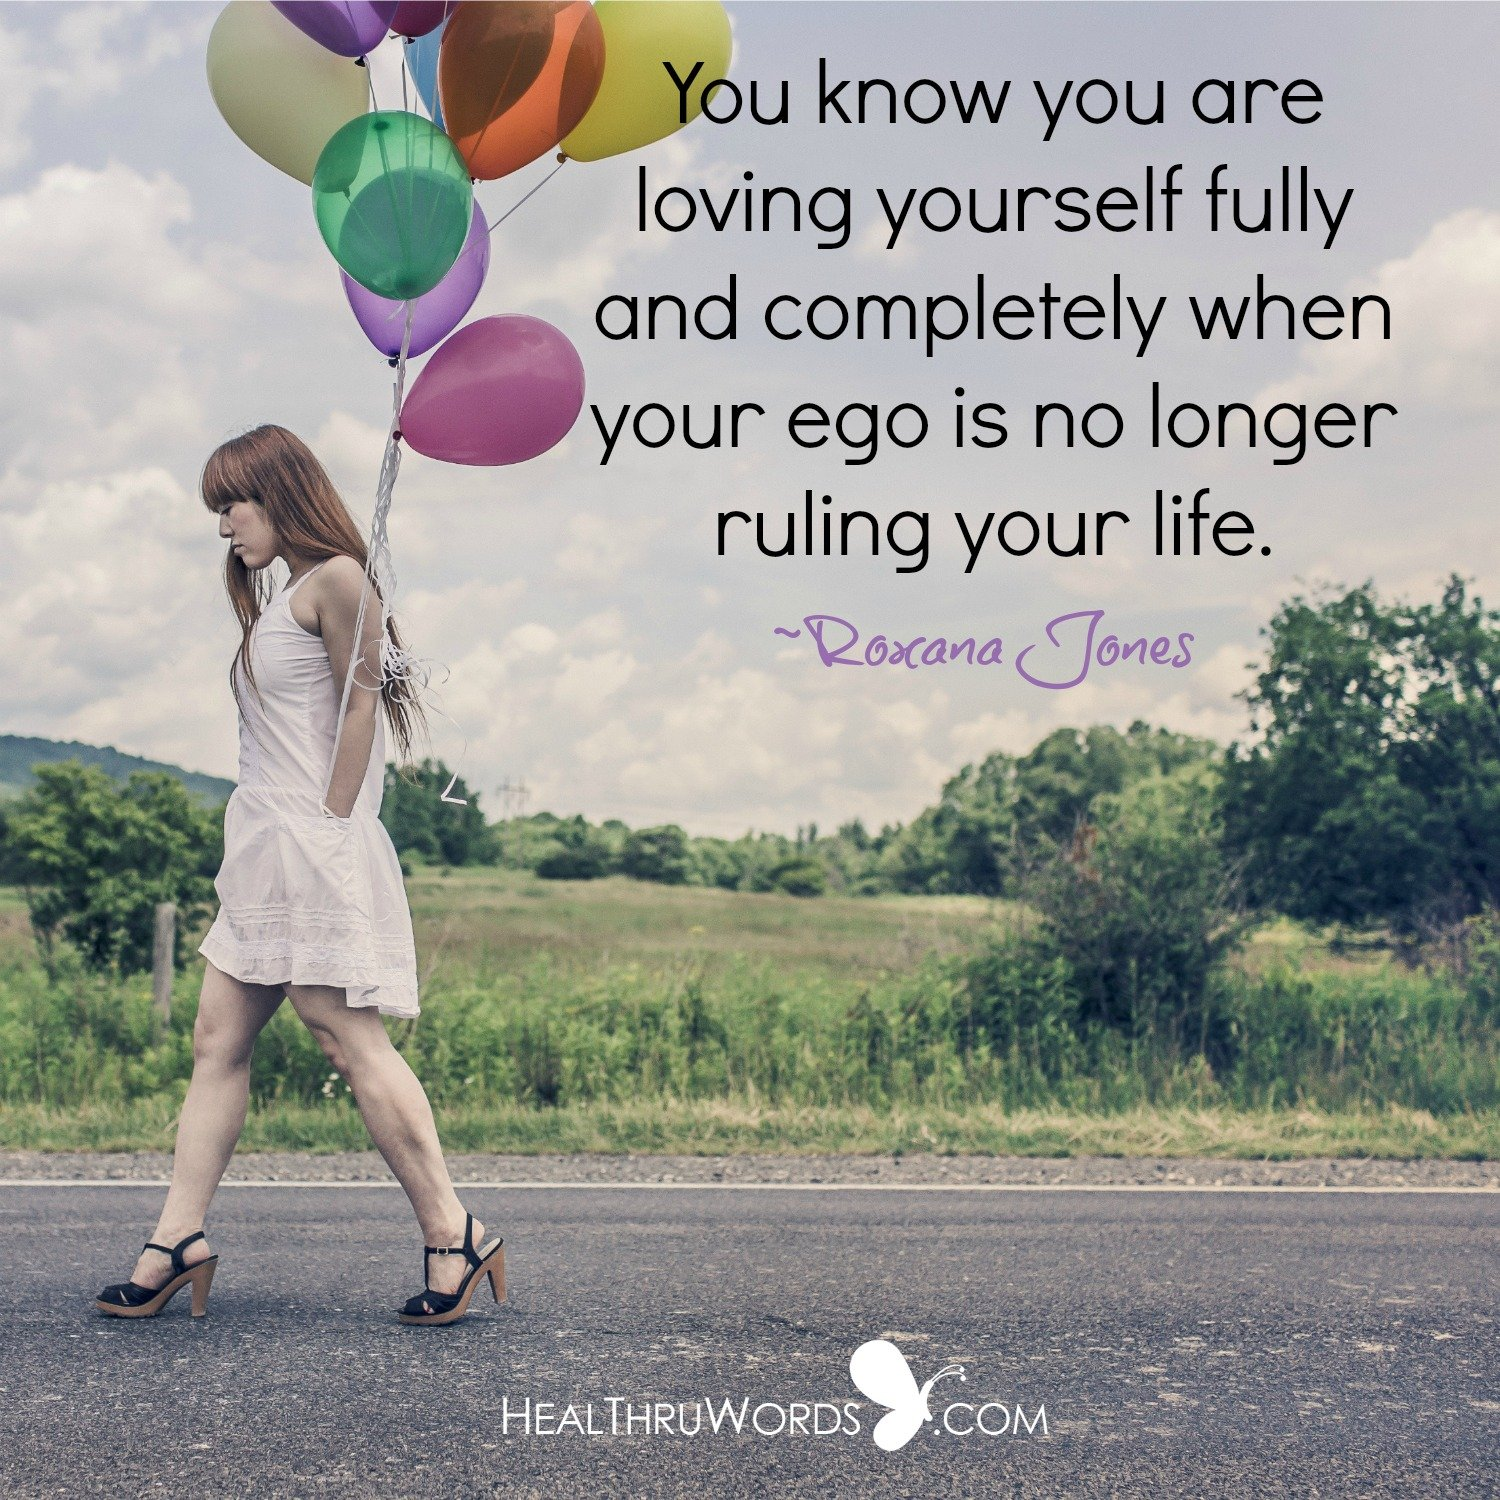 Inspirational Image: Who Rules Your Life?